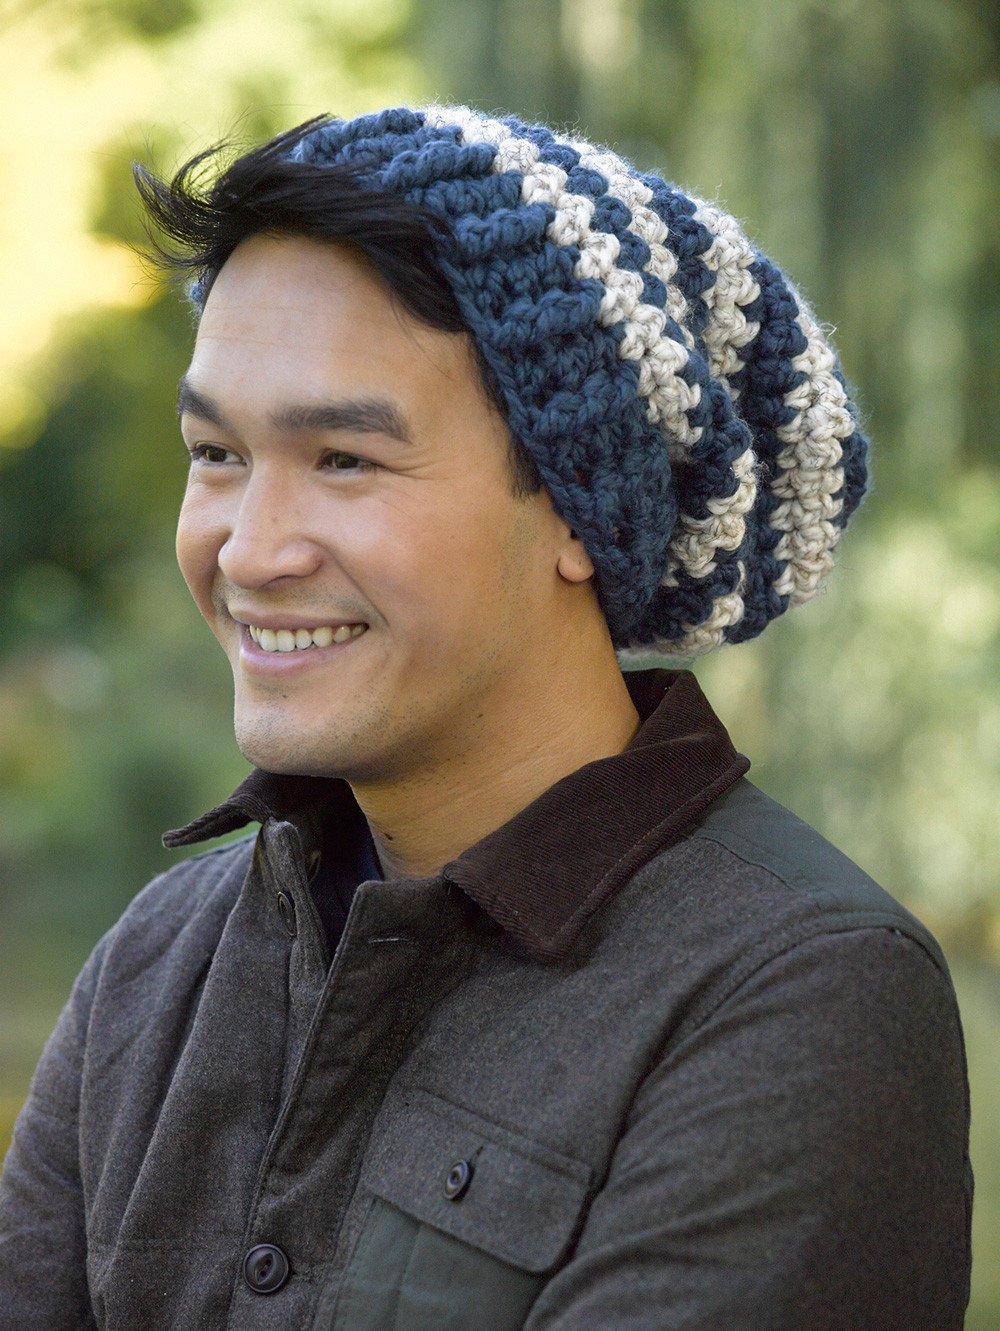 Awesome Free Slouchy Beanie Crochet Pattern for Men Free Mens Crochet Hat Patterns Of Awesome 40 Ideas Free Mens Crochet Hat Patterns